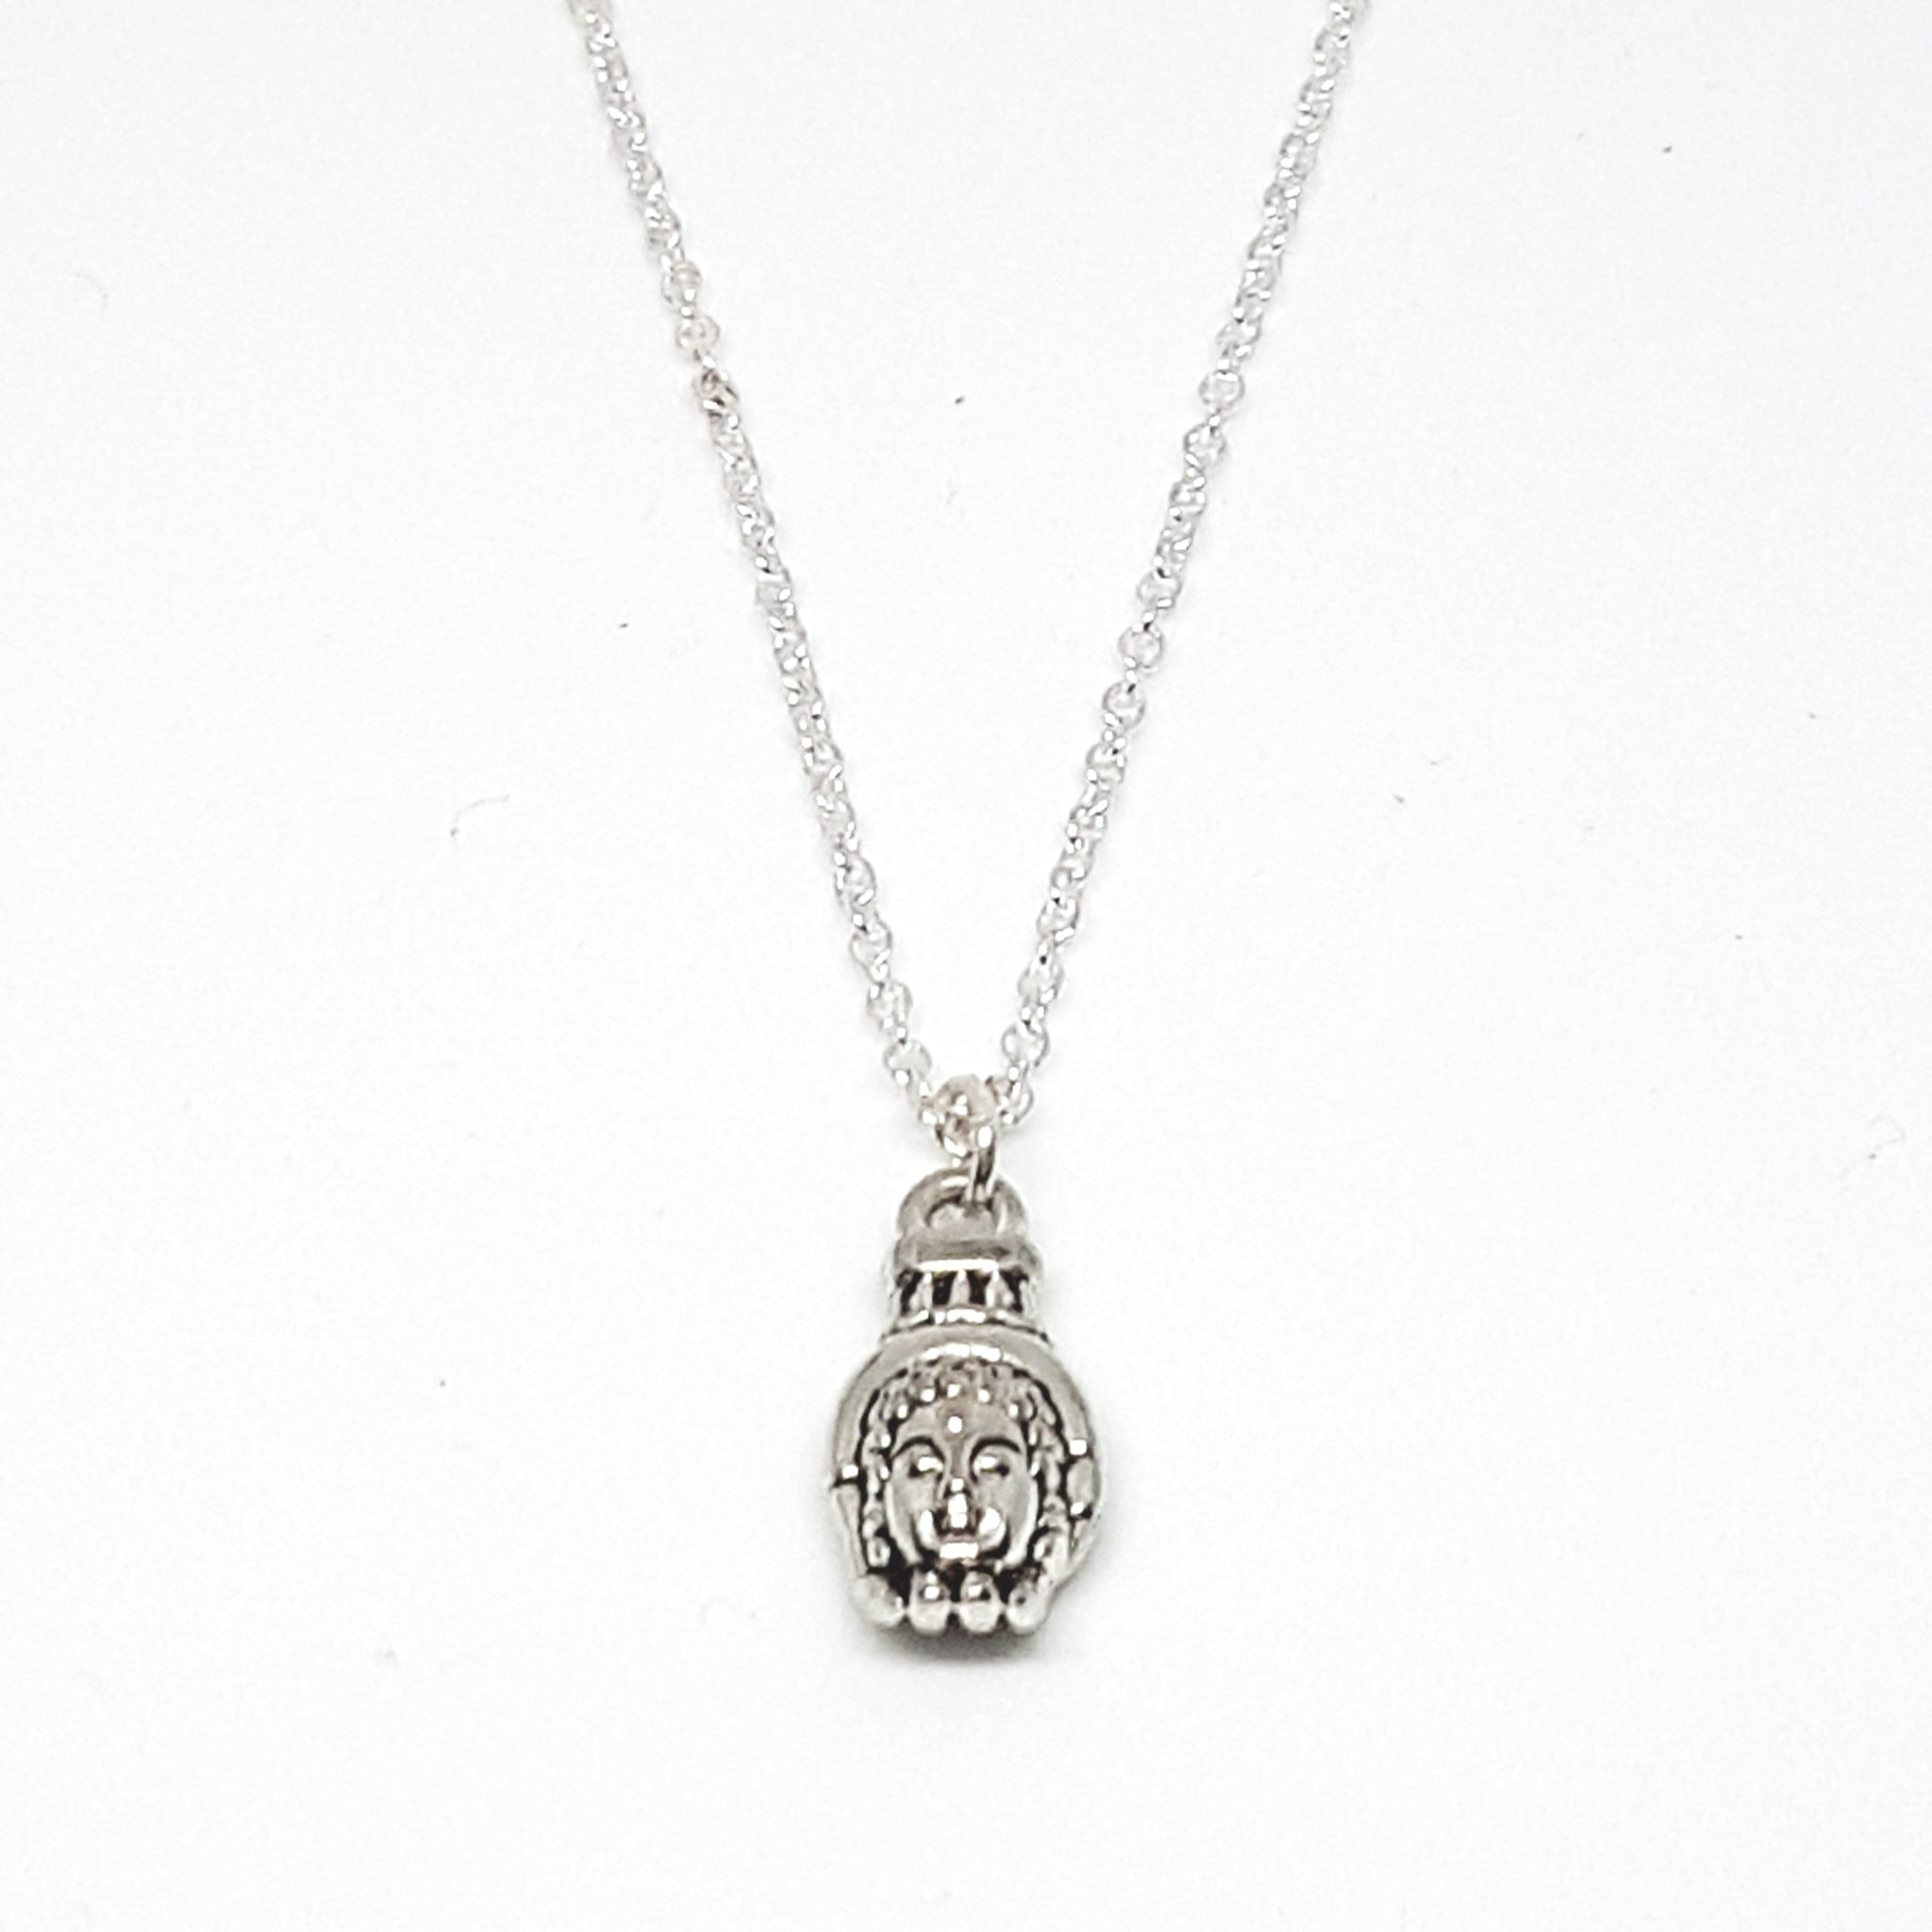 Hands of Buddha Necklace